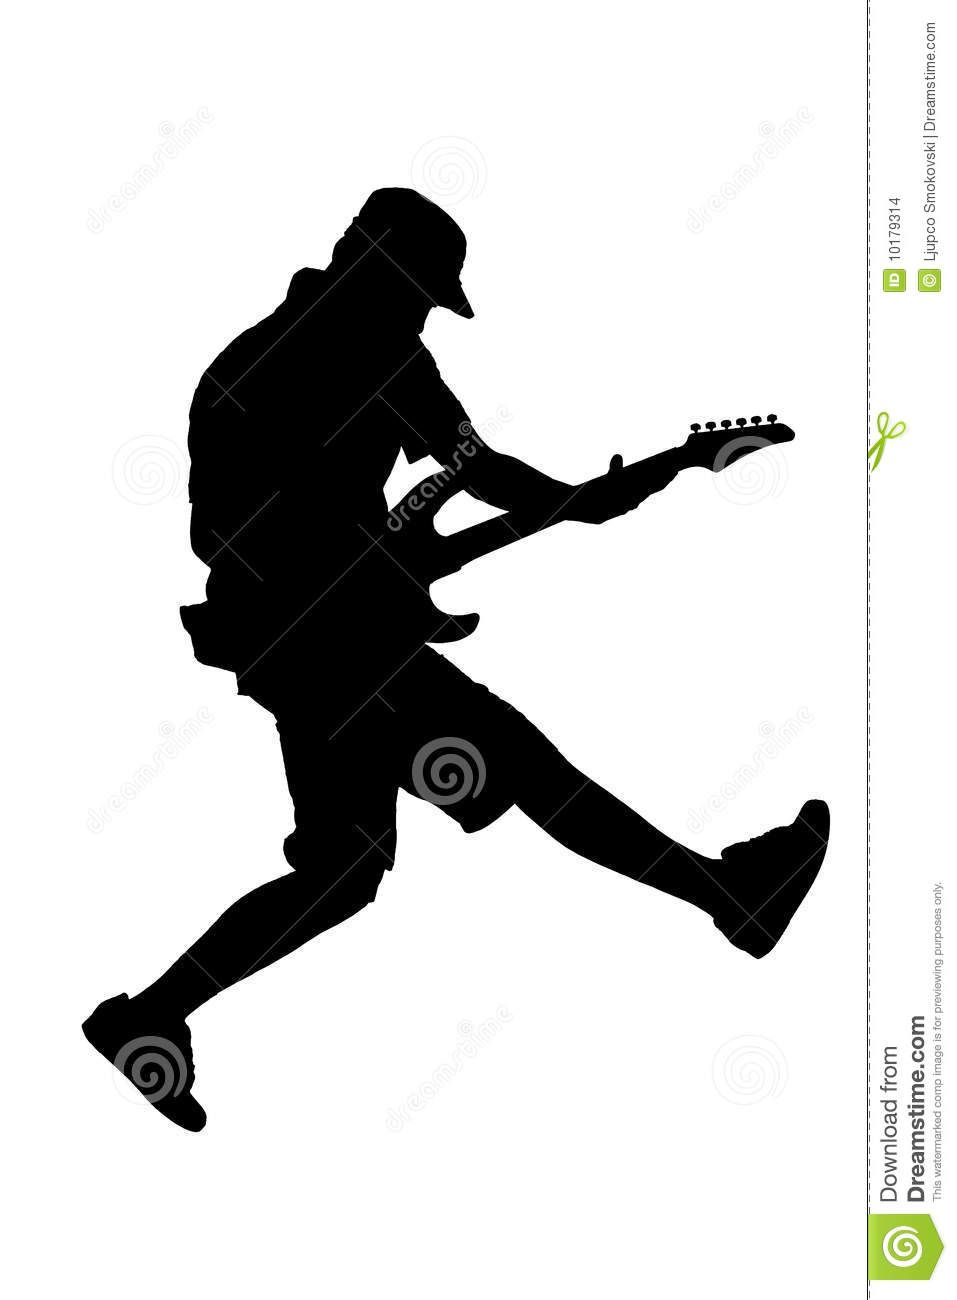 Silhouette of a guitar player jumping | music | Pinterest ...